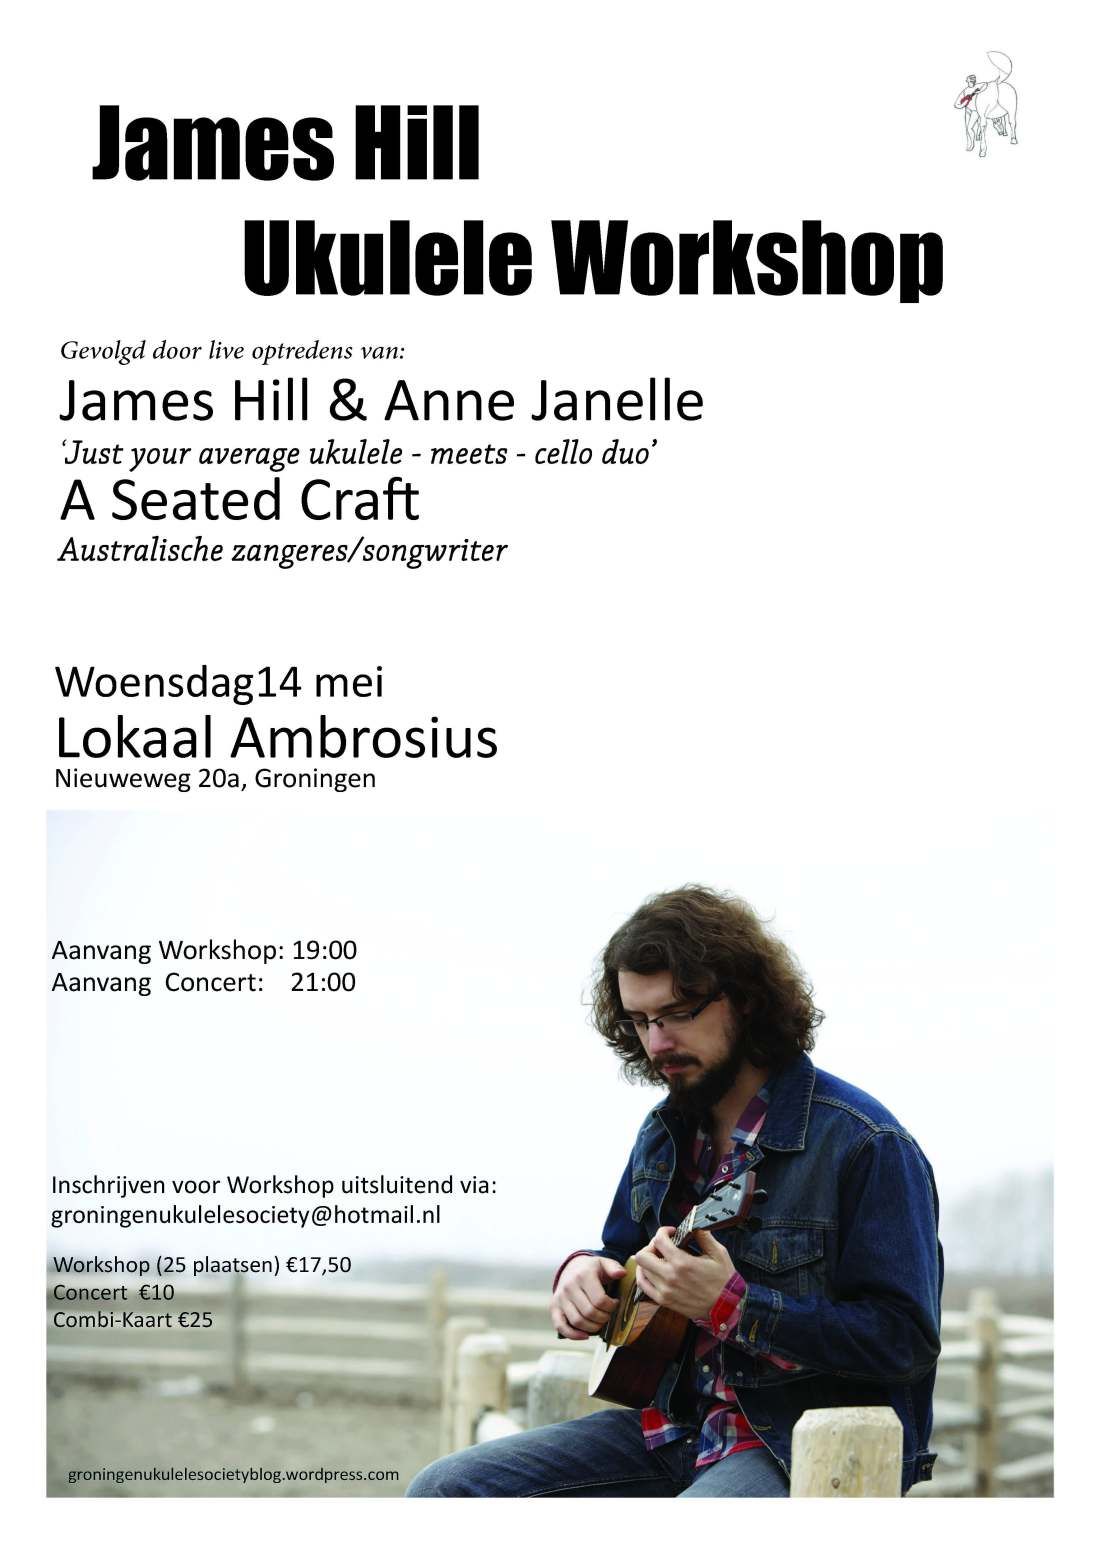 James Hill Ukulele Workshop